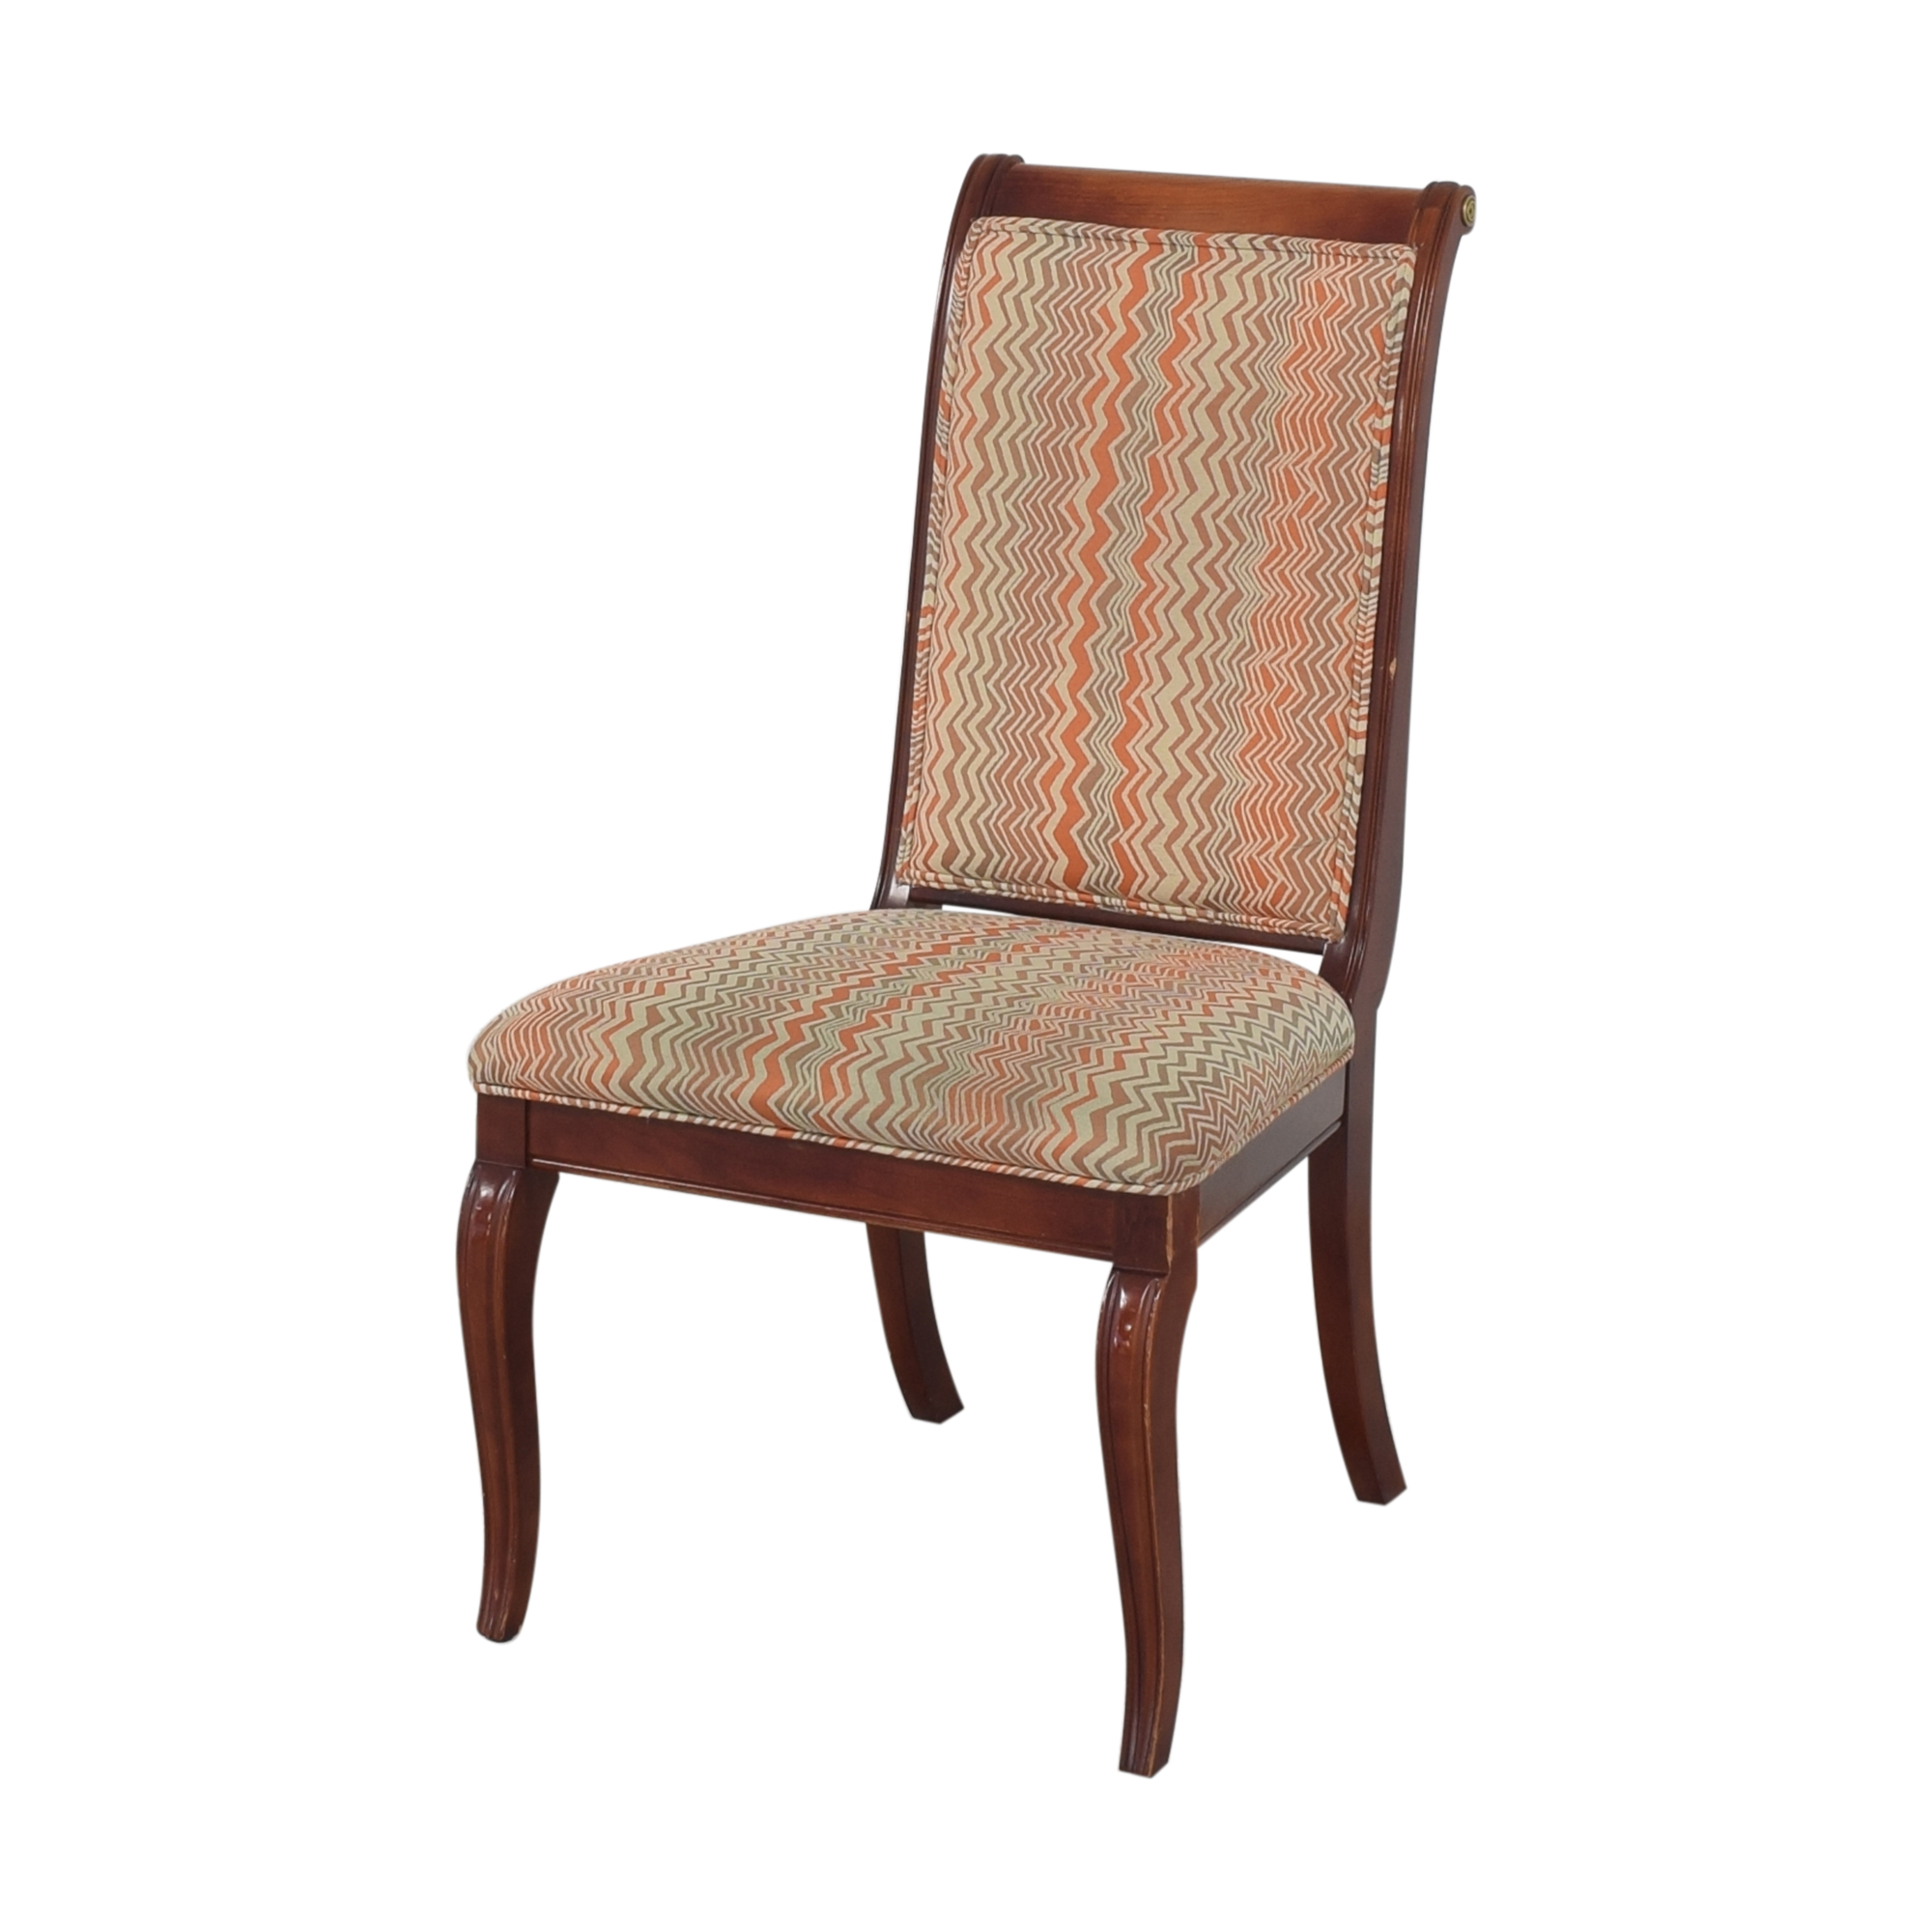 Ethan Allen Ethan Allen Dining Side Chair on sale